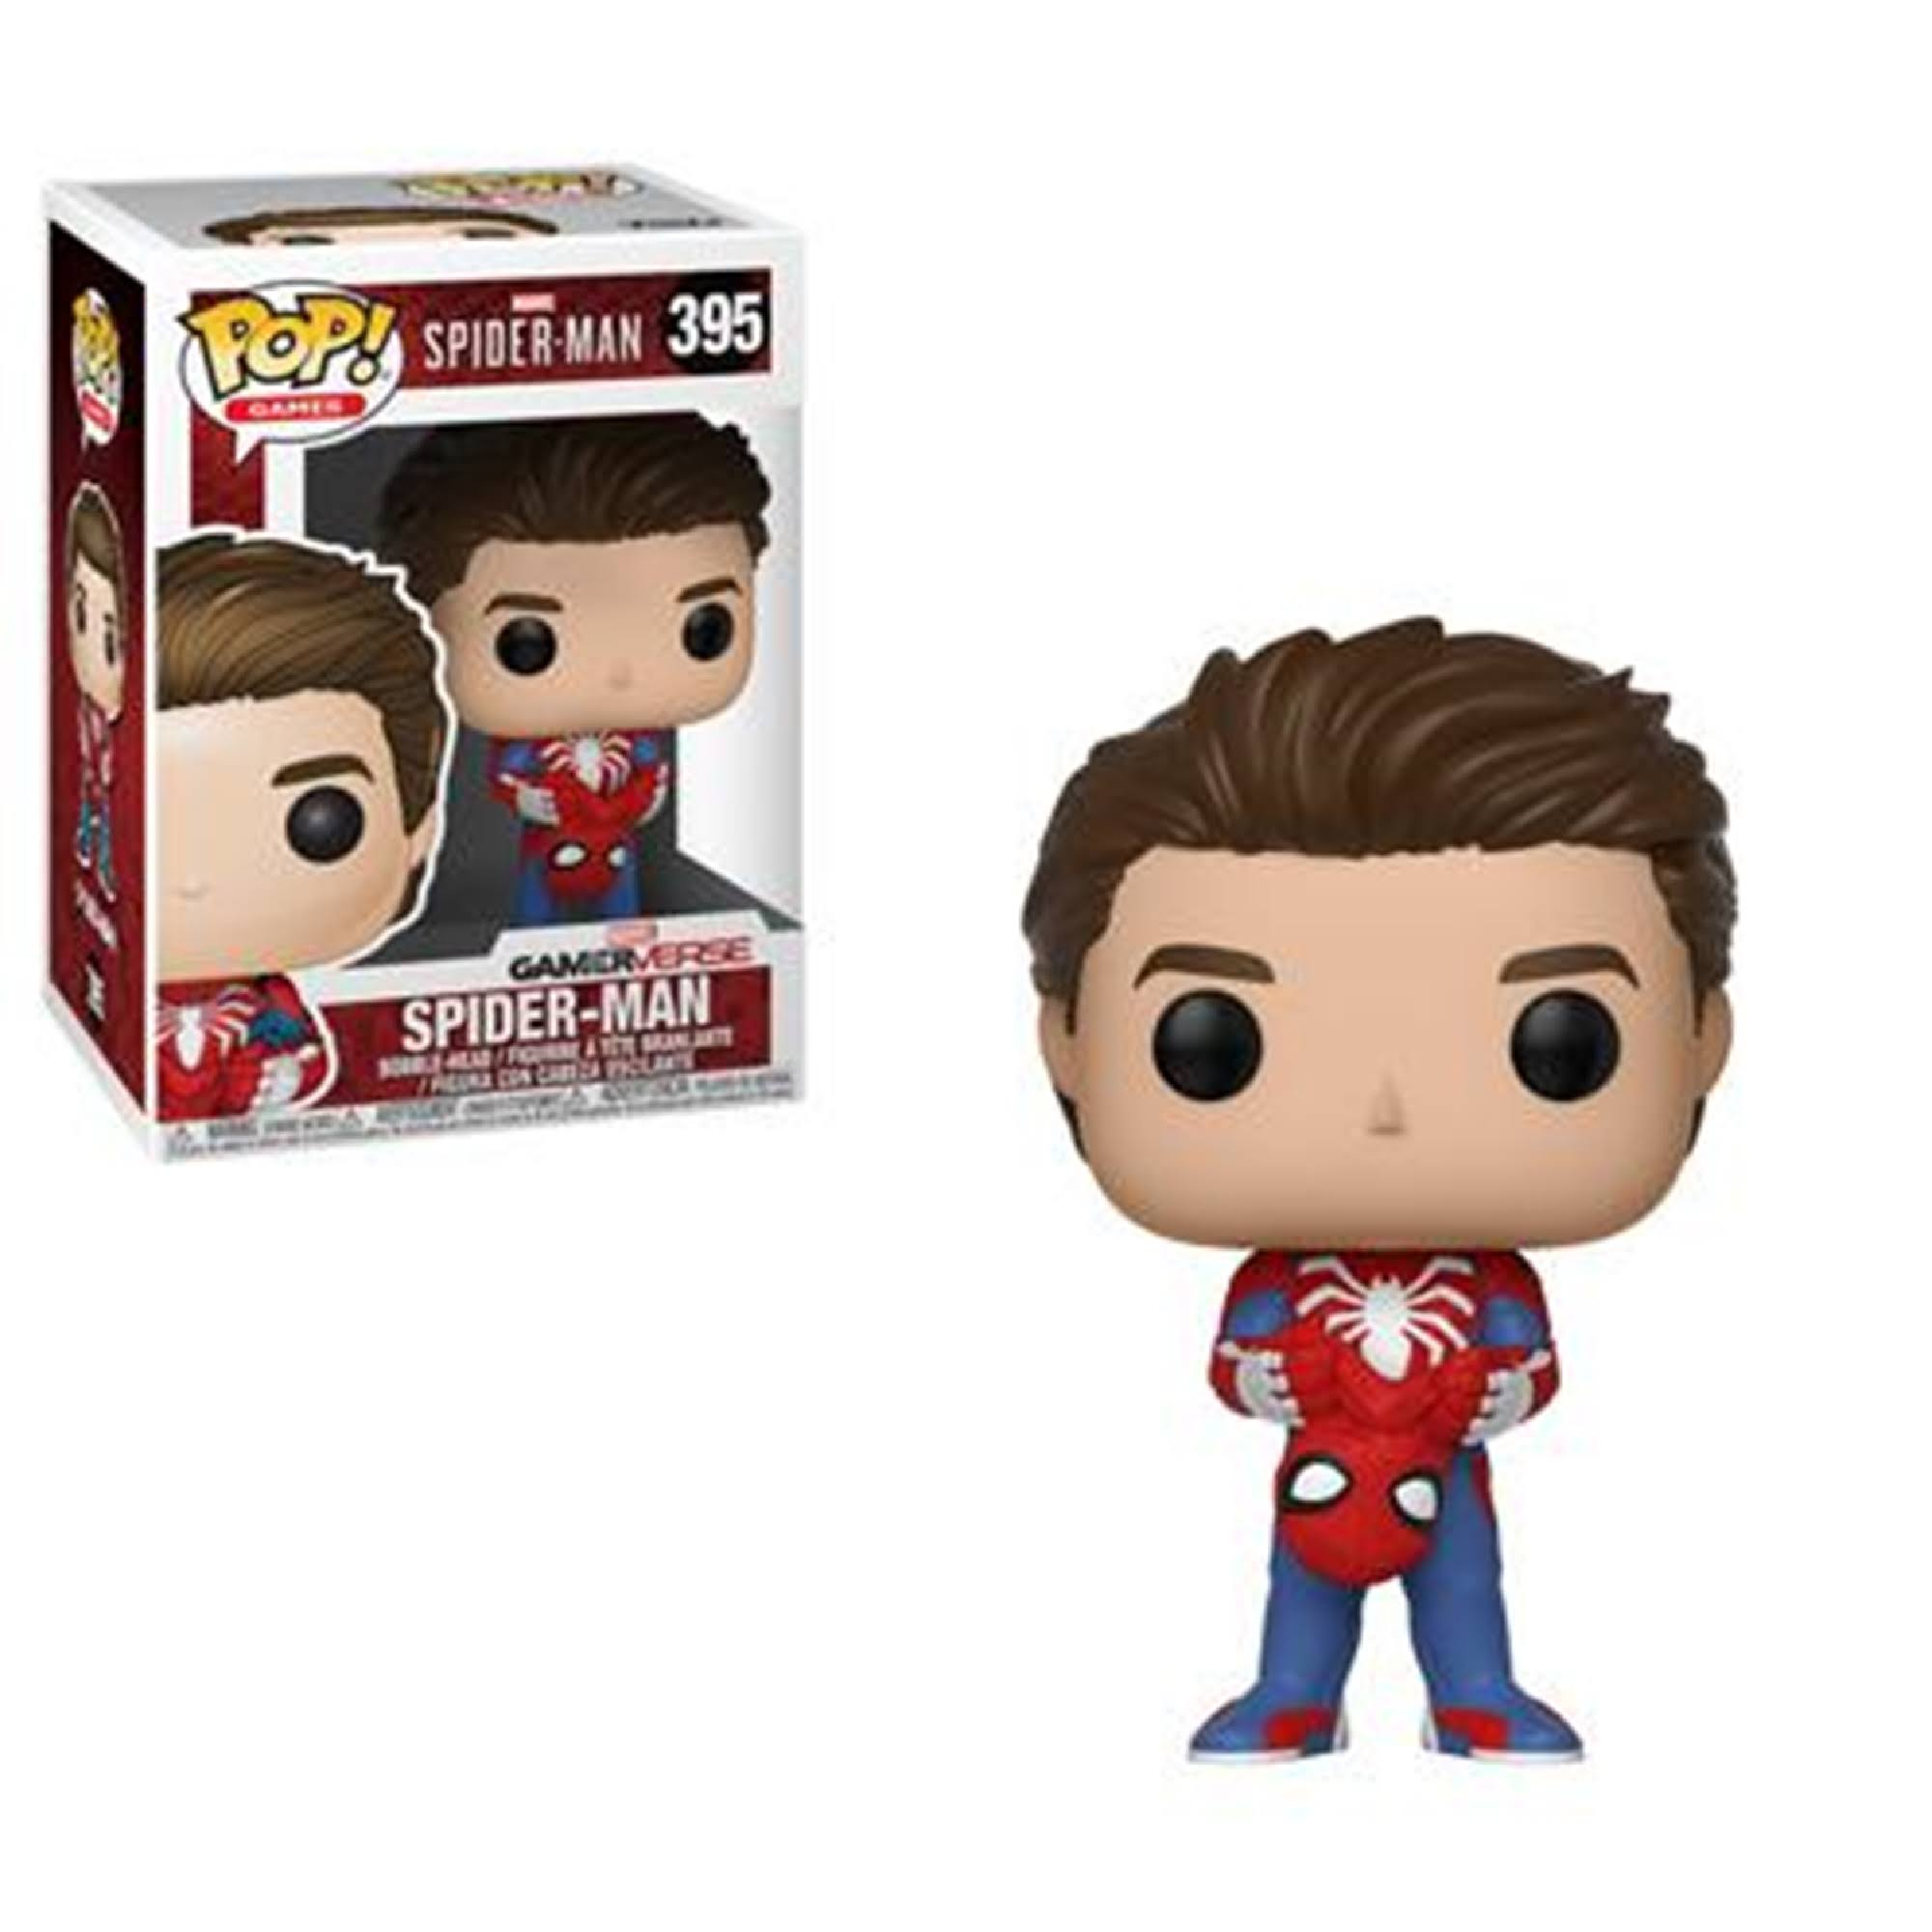 Funko Pop Marvel Spider-Man Vinyl Bobble-Head Figure - Spider-Man Unmasked